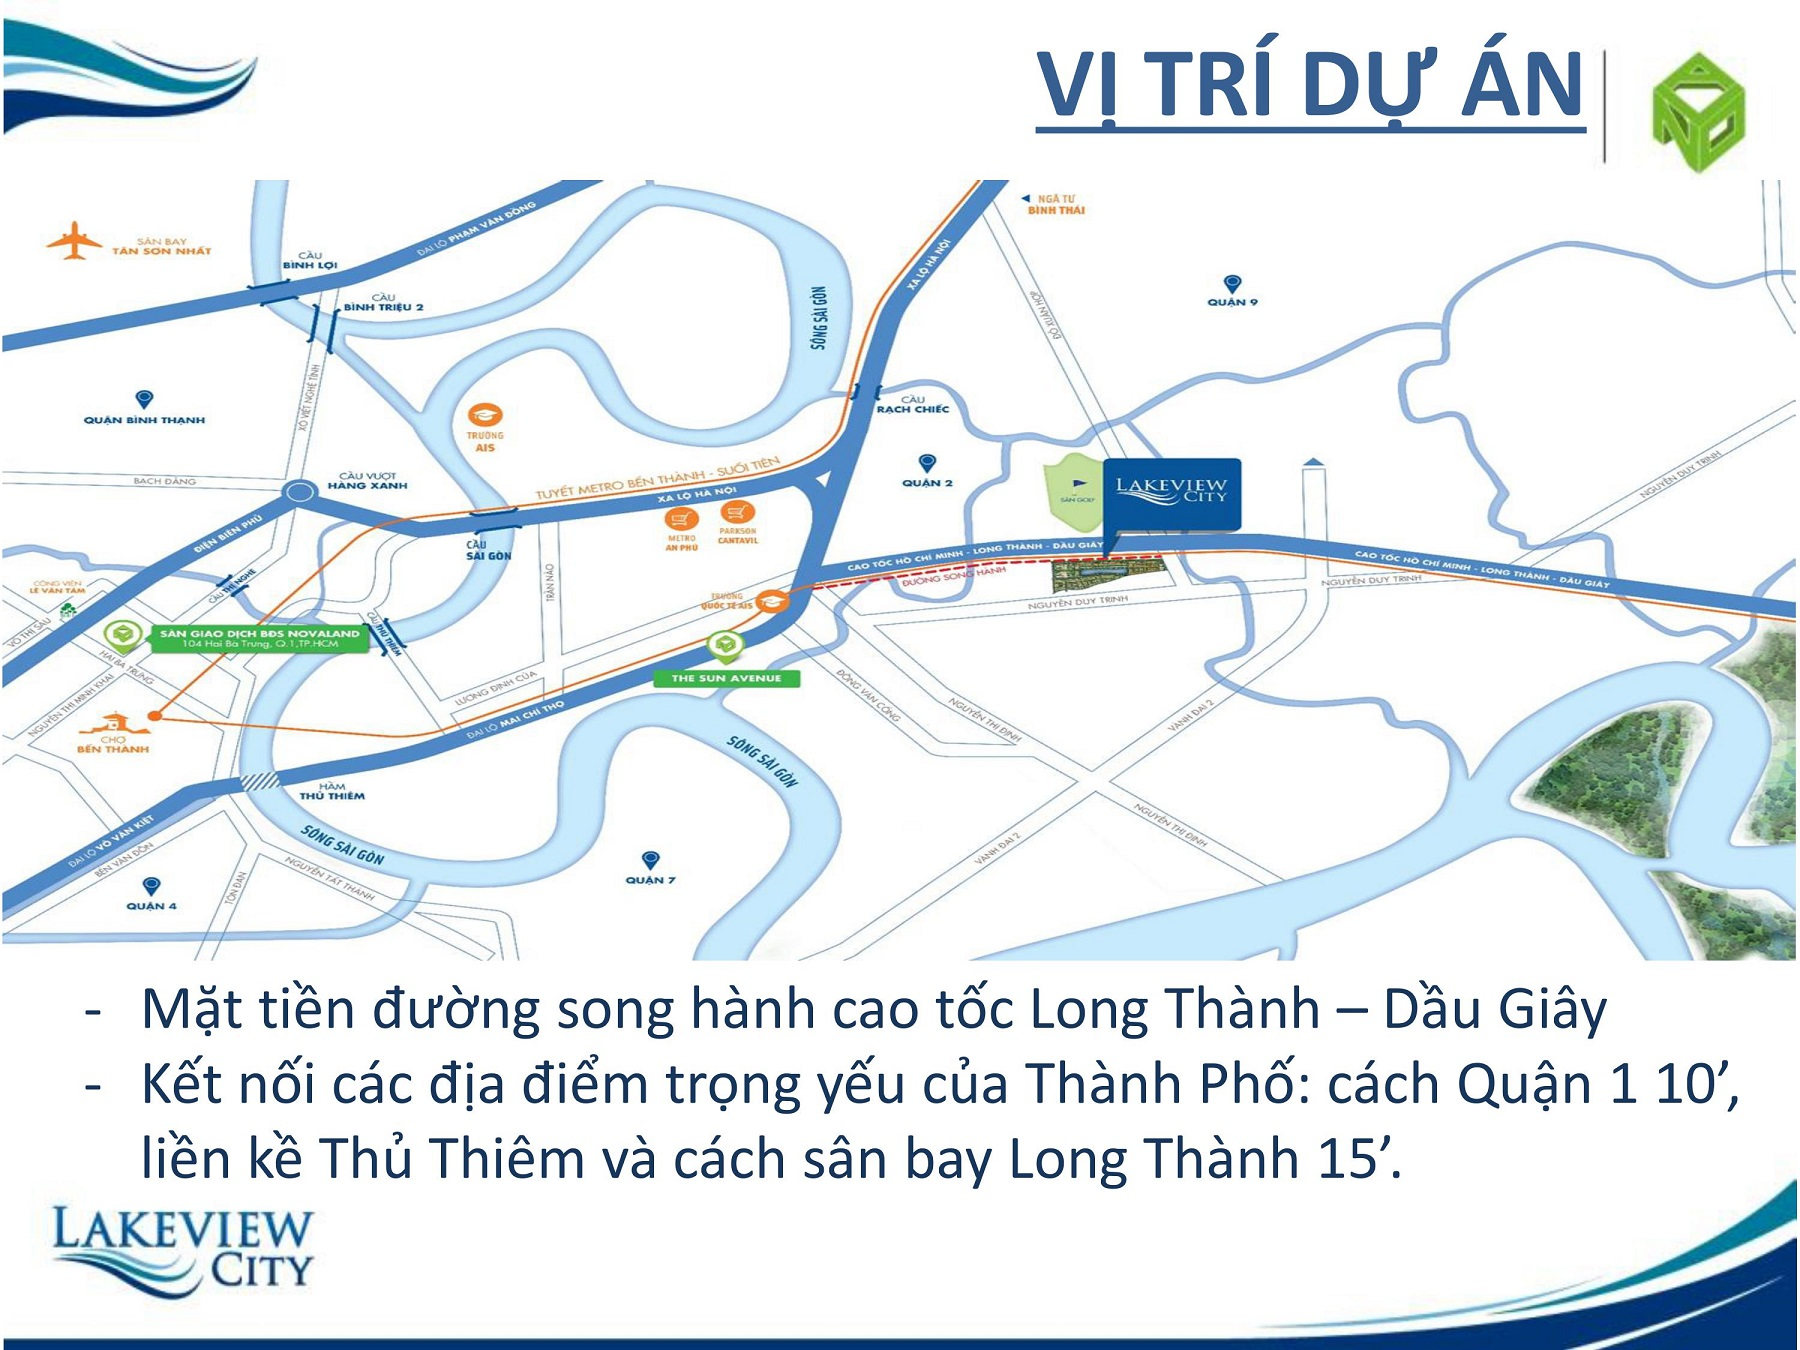 vi-tri-du-an-lakeview-city-quan-2